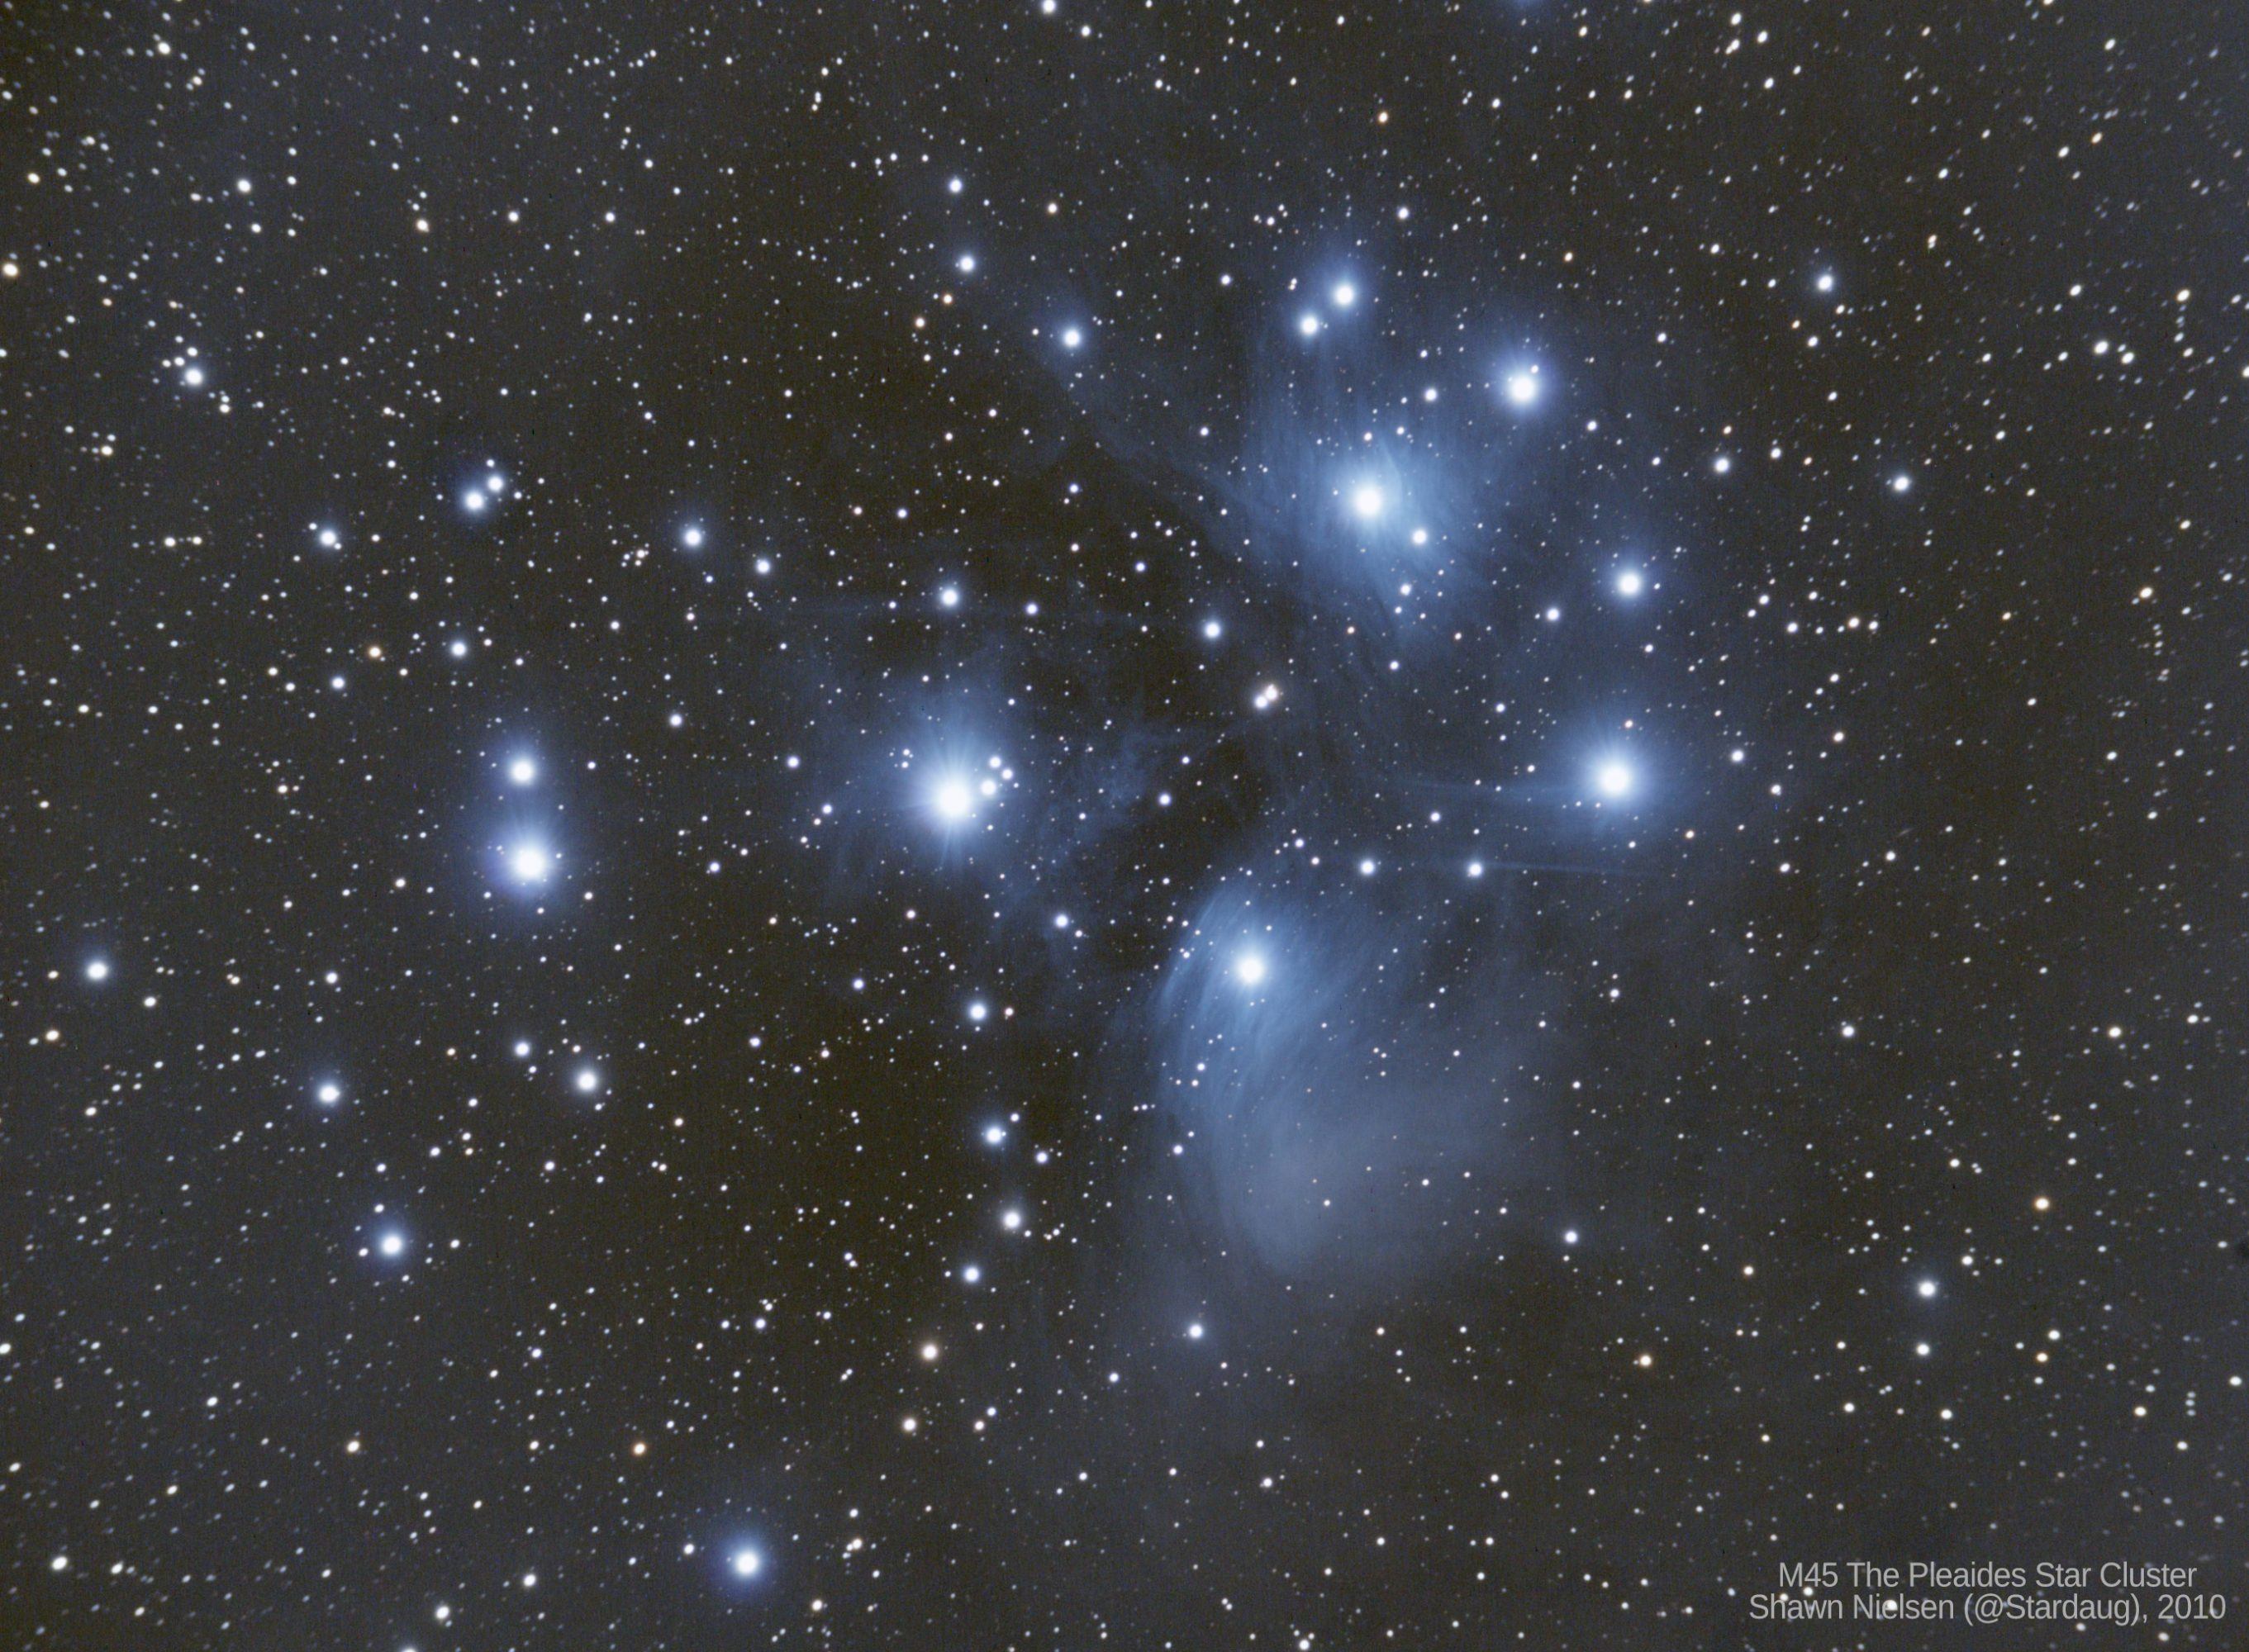 M45 the Pleiades star cluster. Shawn Nielsen, 2010